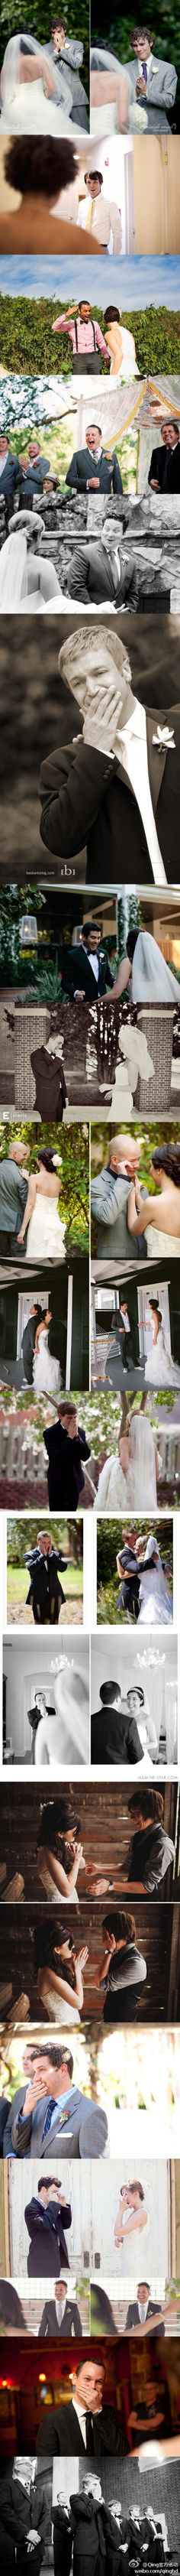 Precious pictures taken at the moment of the grooms reaction to the bride. So priceless.